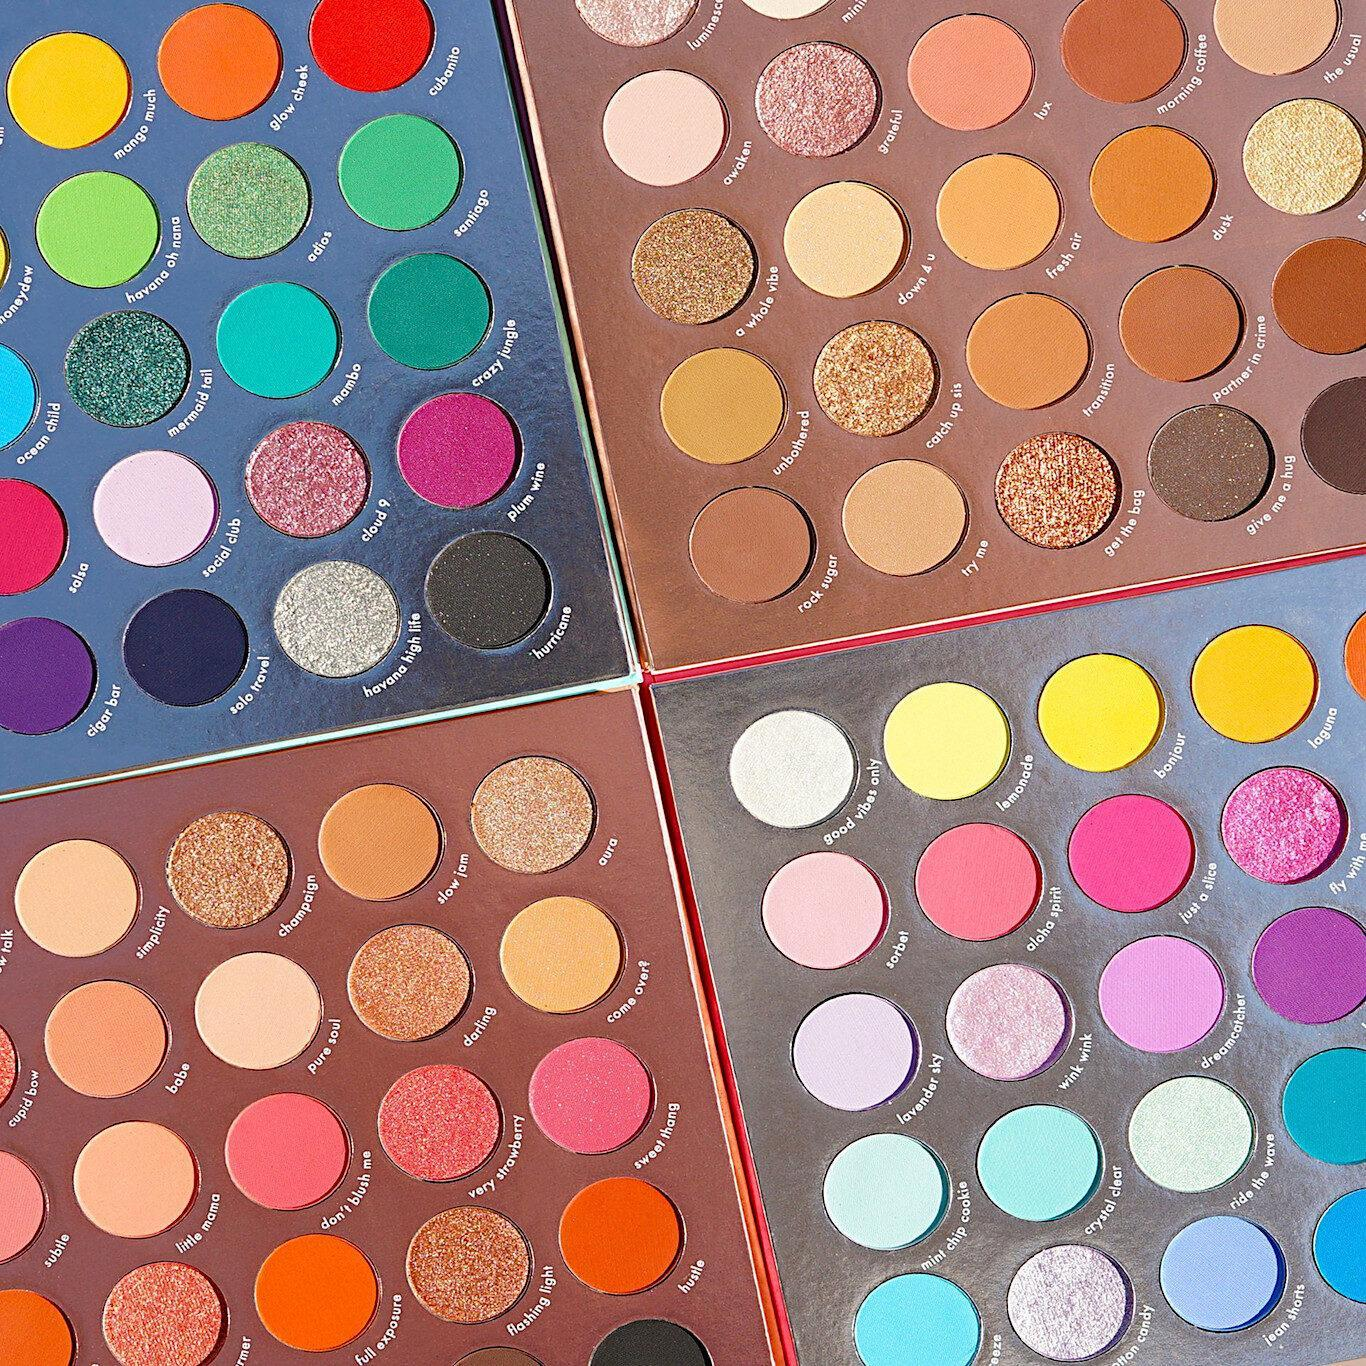 Kara Beauty Pro Shadow Palettes New PRO Palettes PRO9 12 Open Top Promo Post Cover